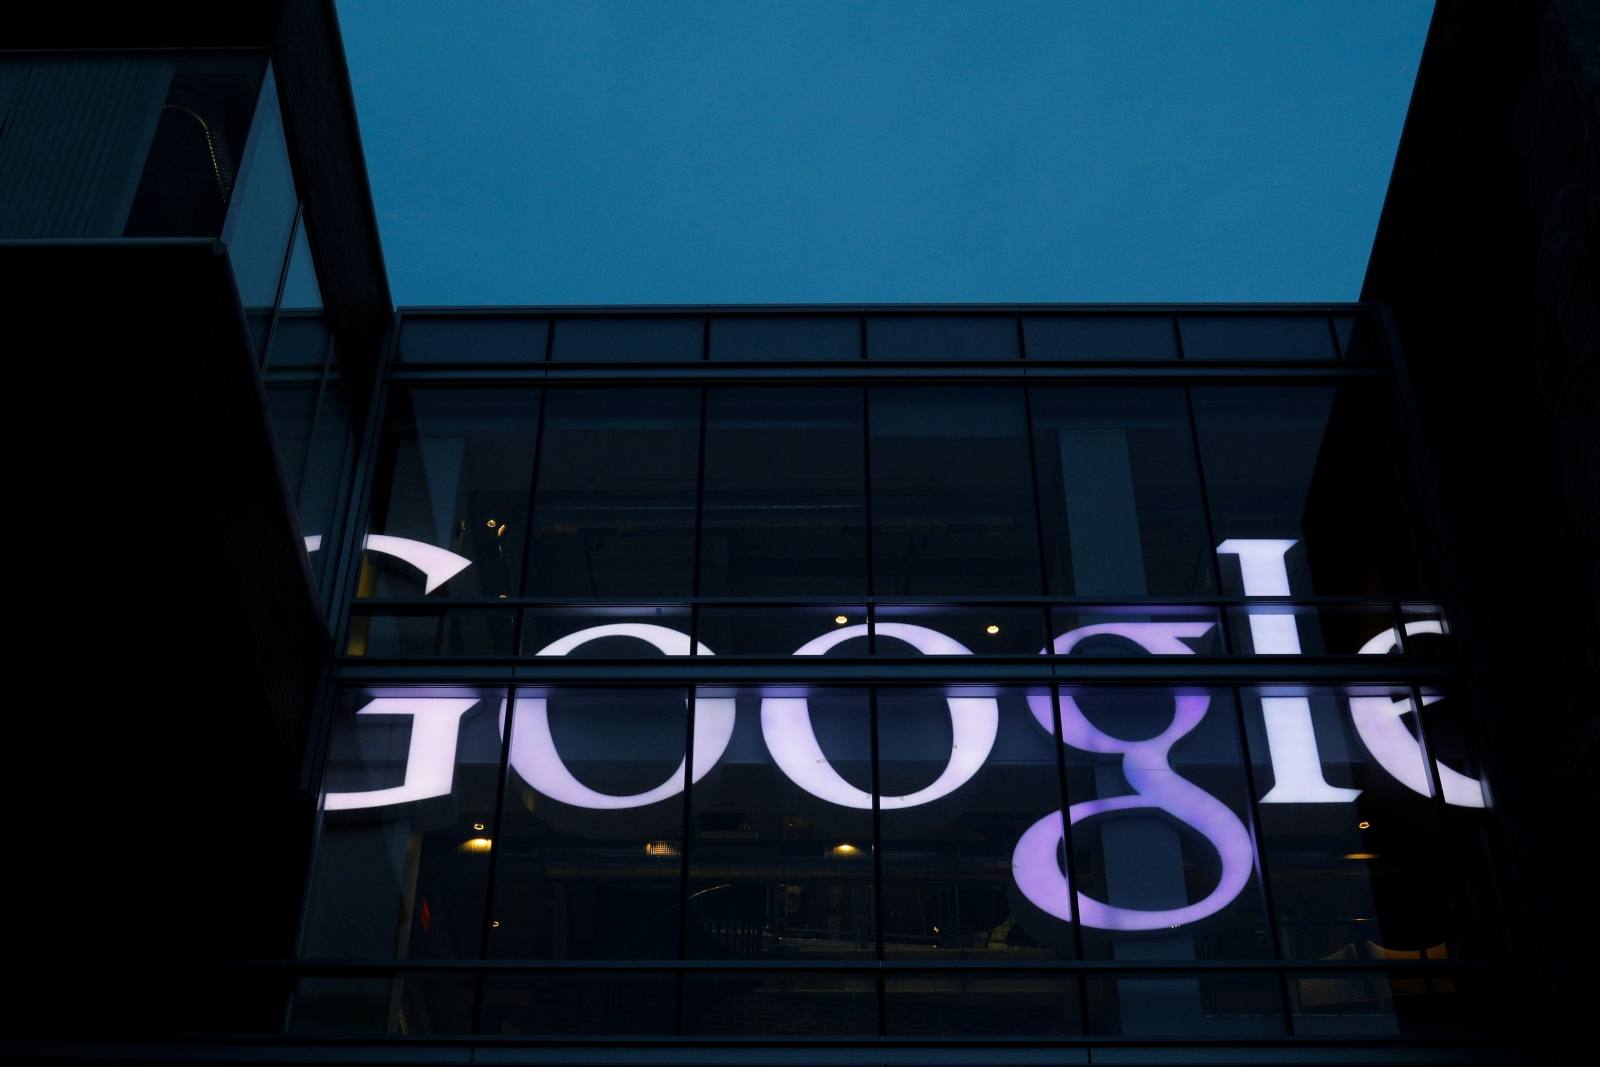 Oracle-backed watchdog claims Google spends millions on biased research